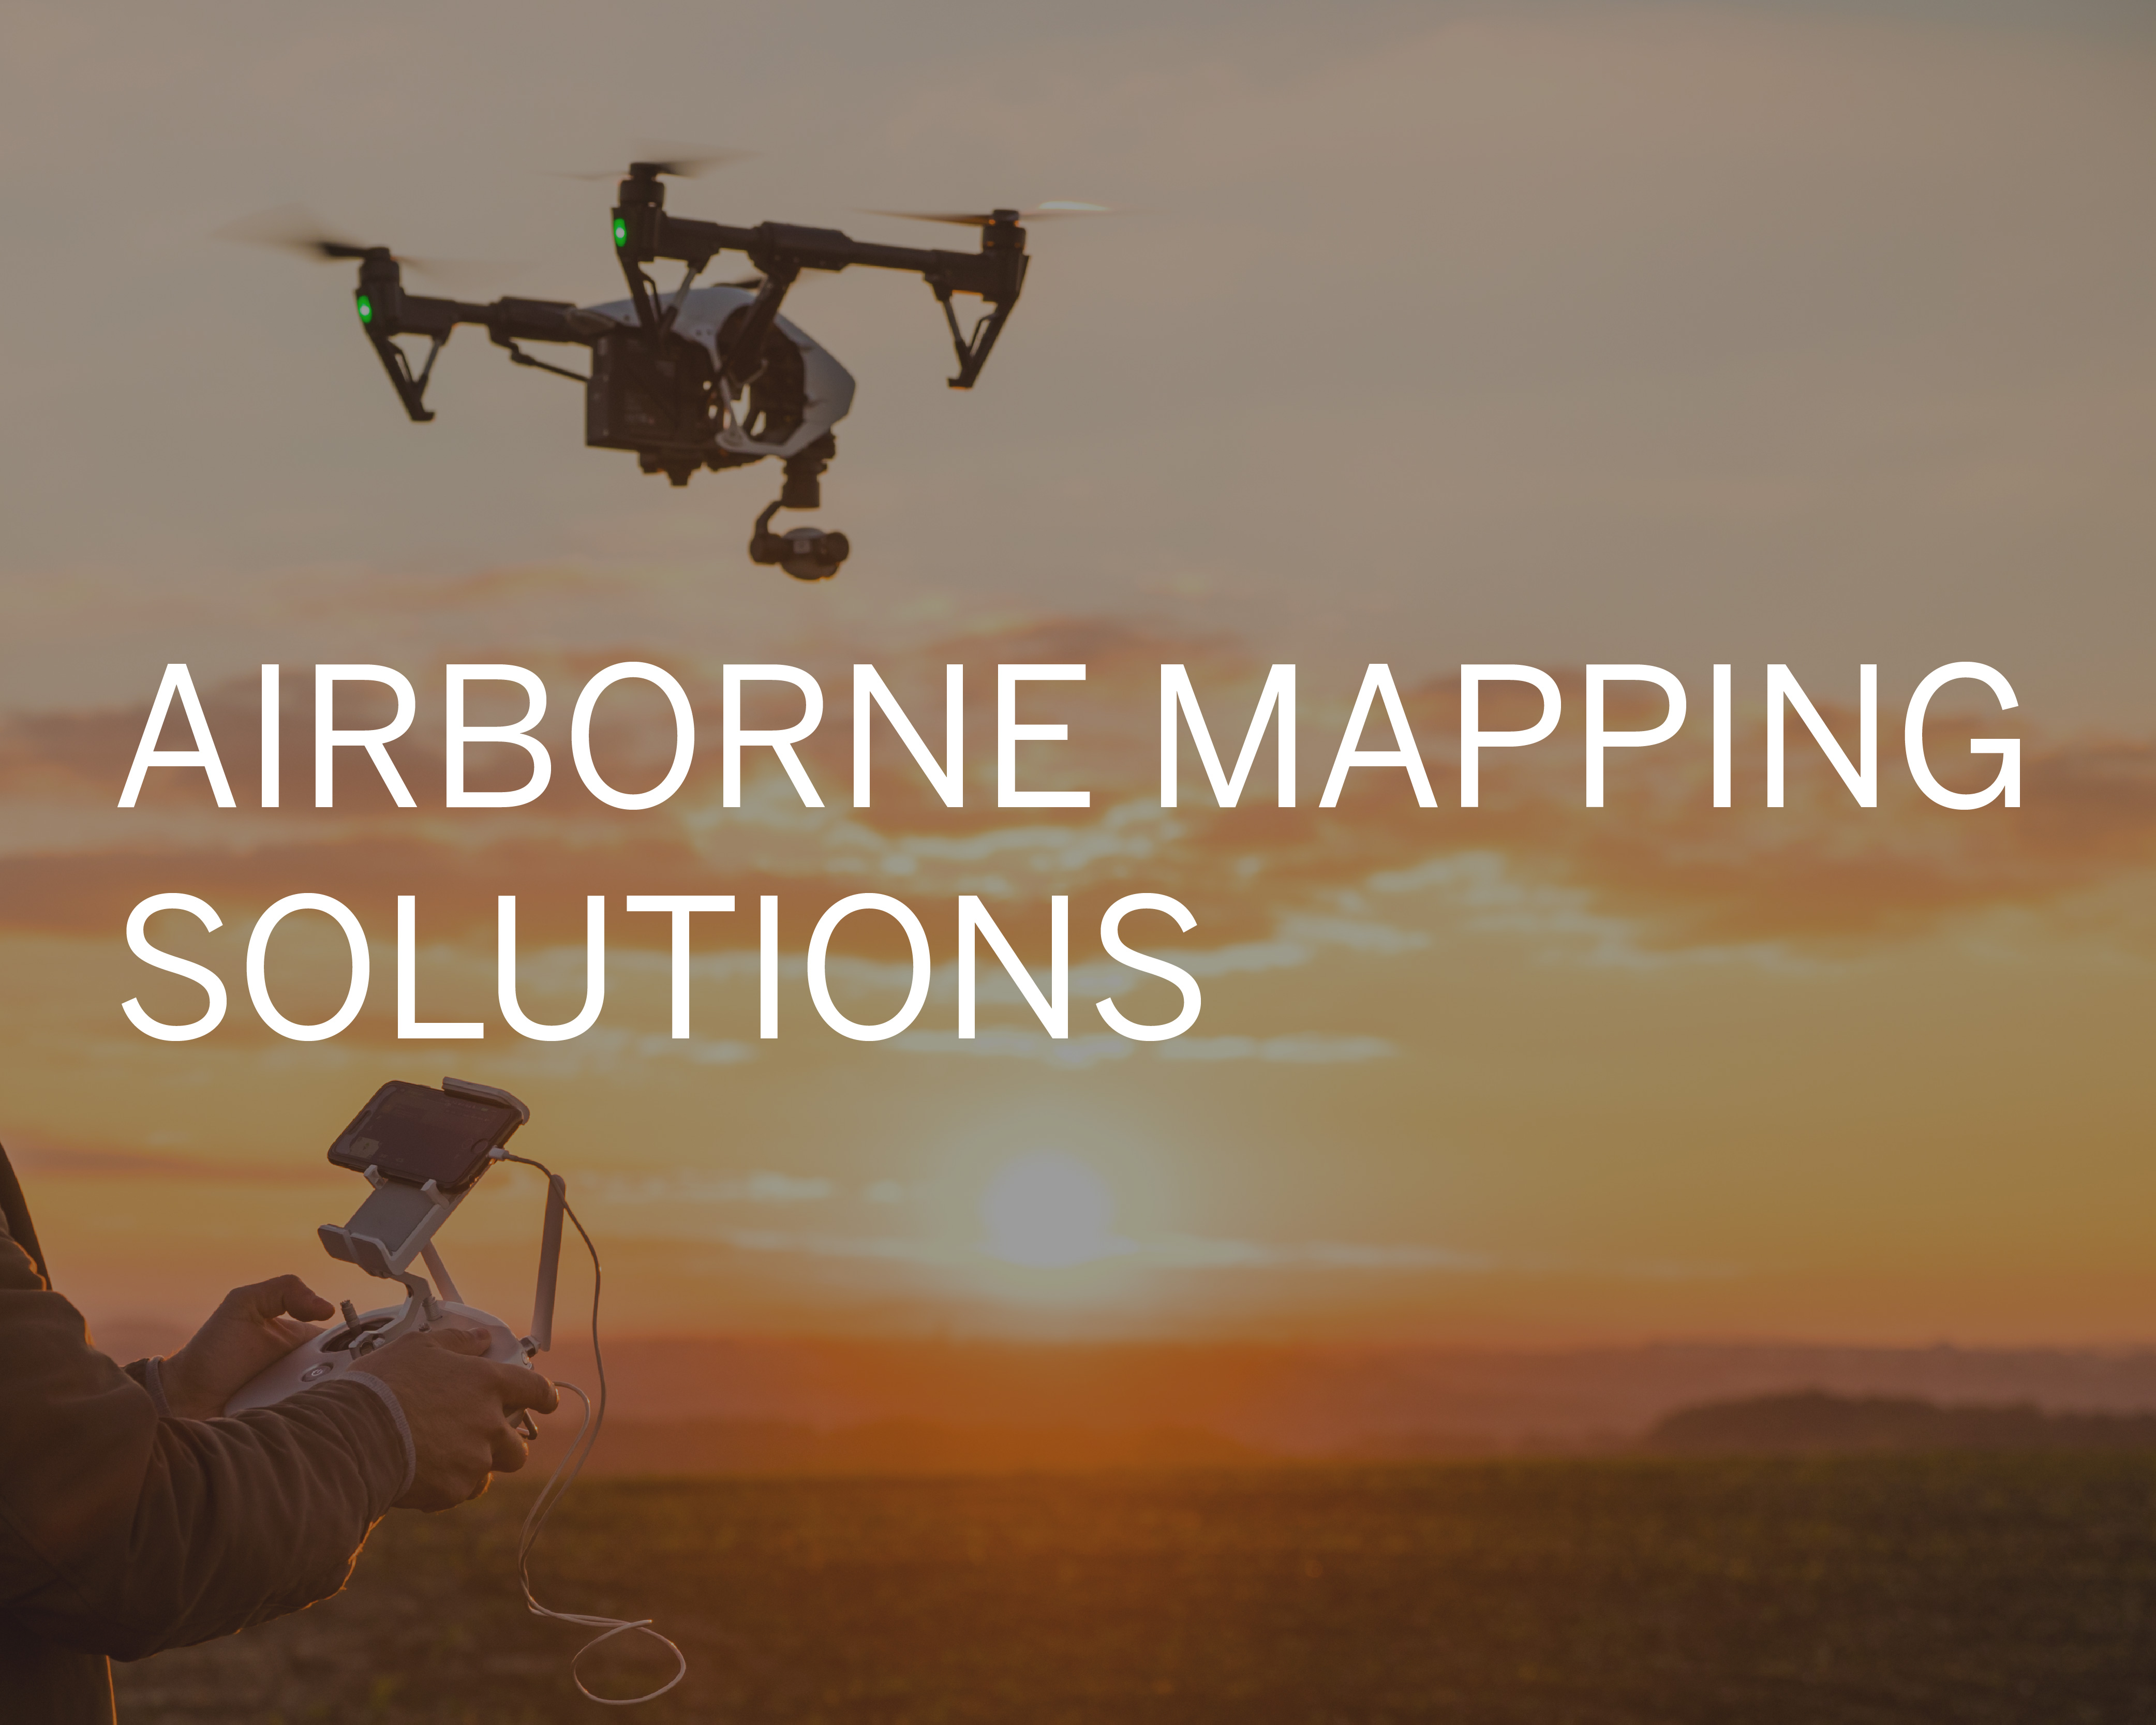 Aiborne Mapping Solutions